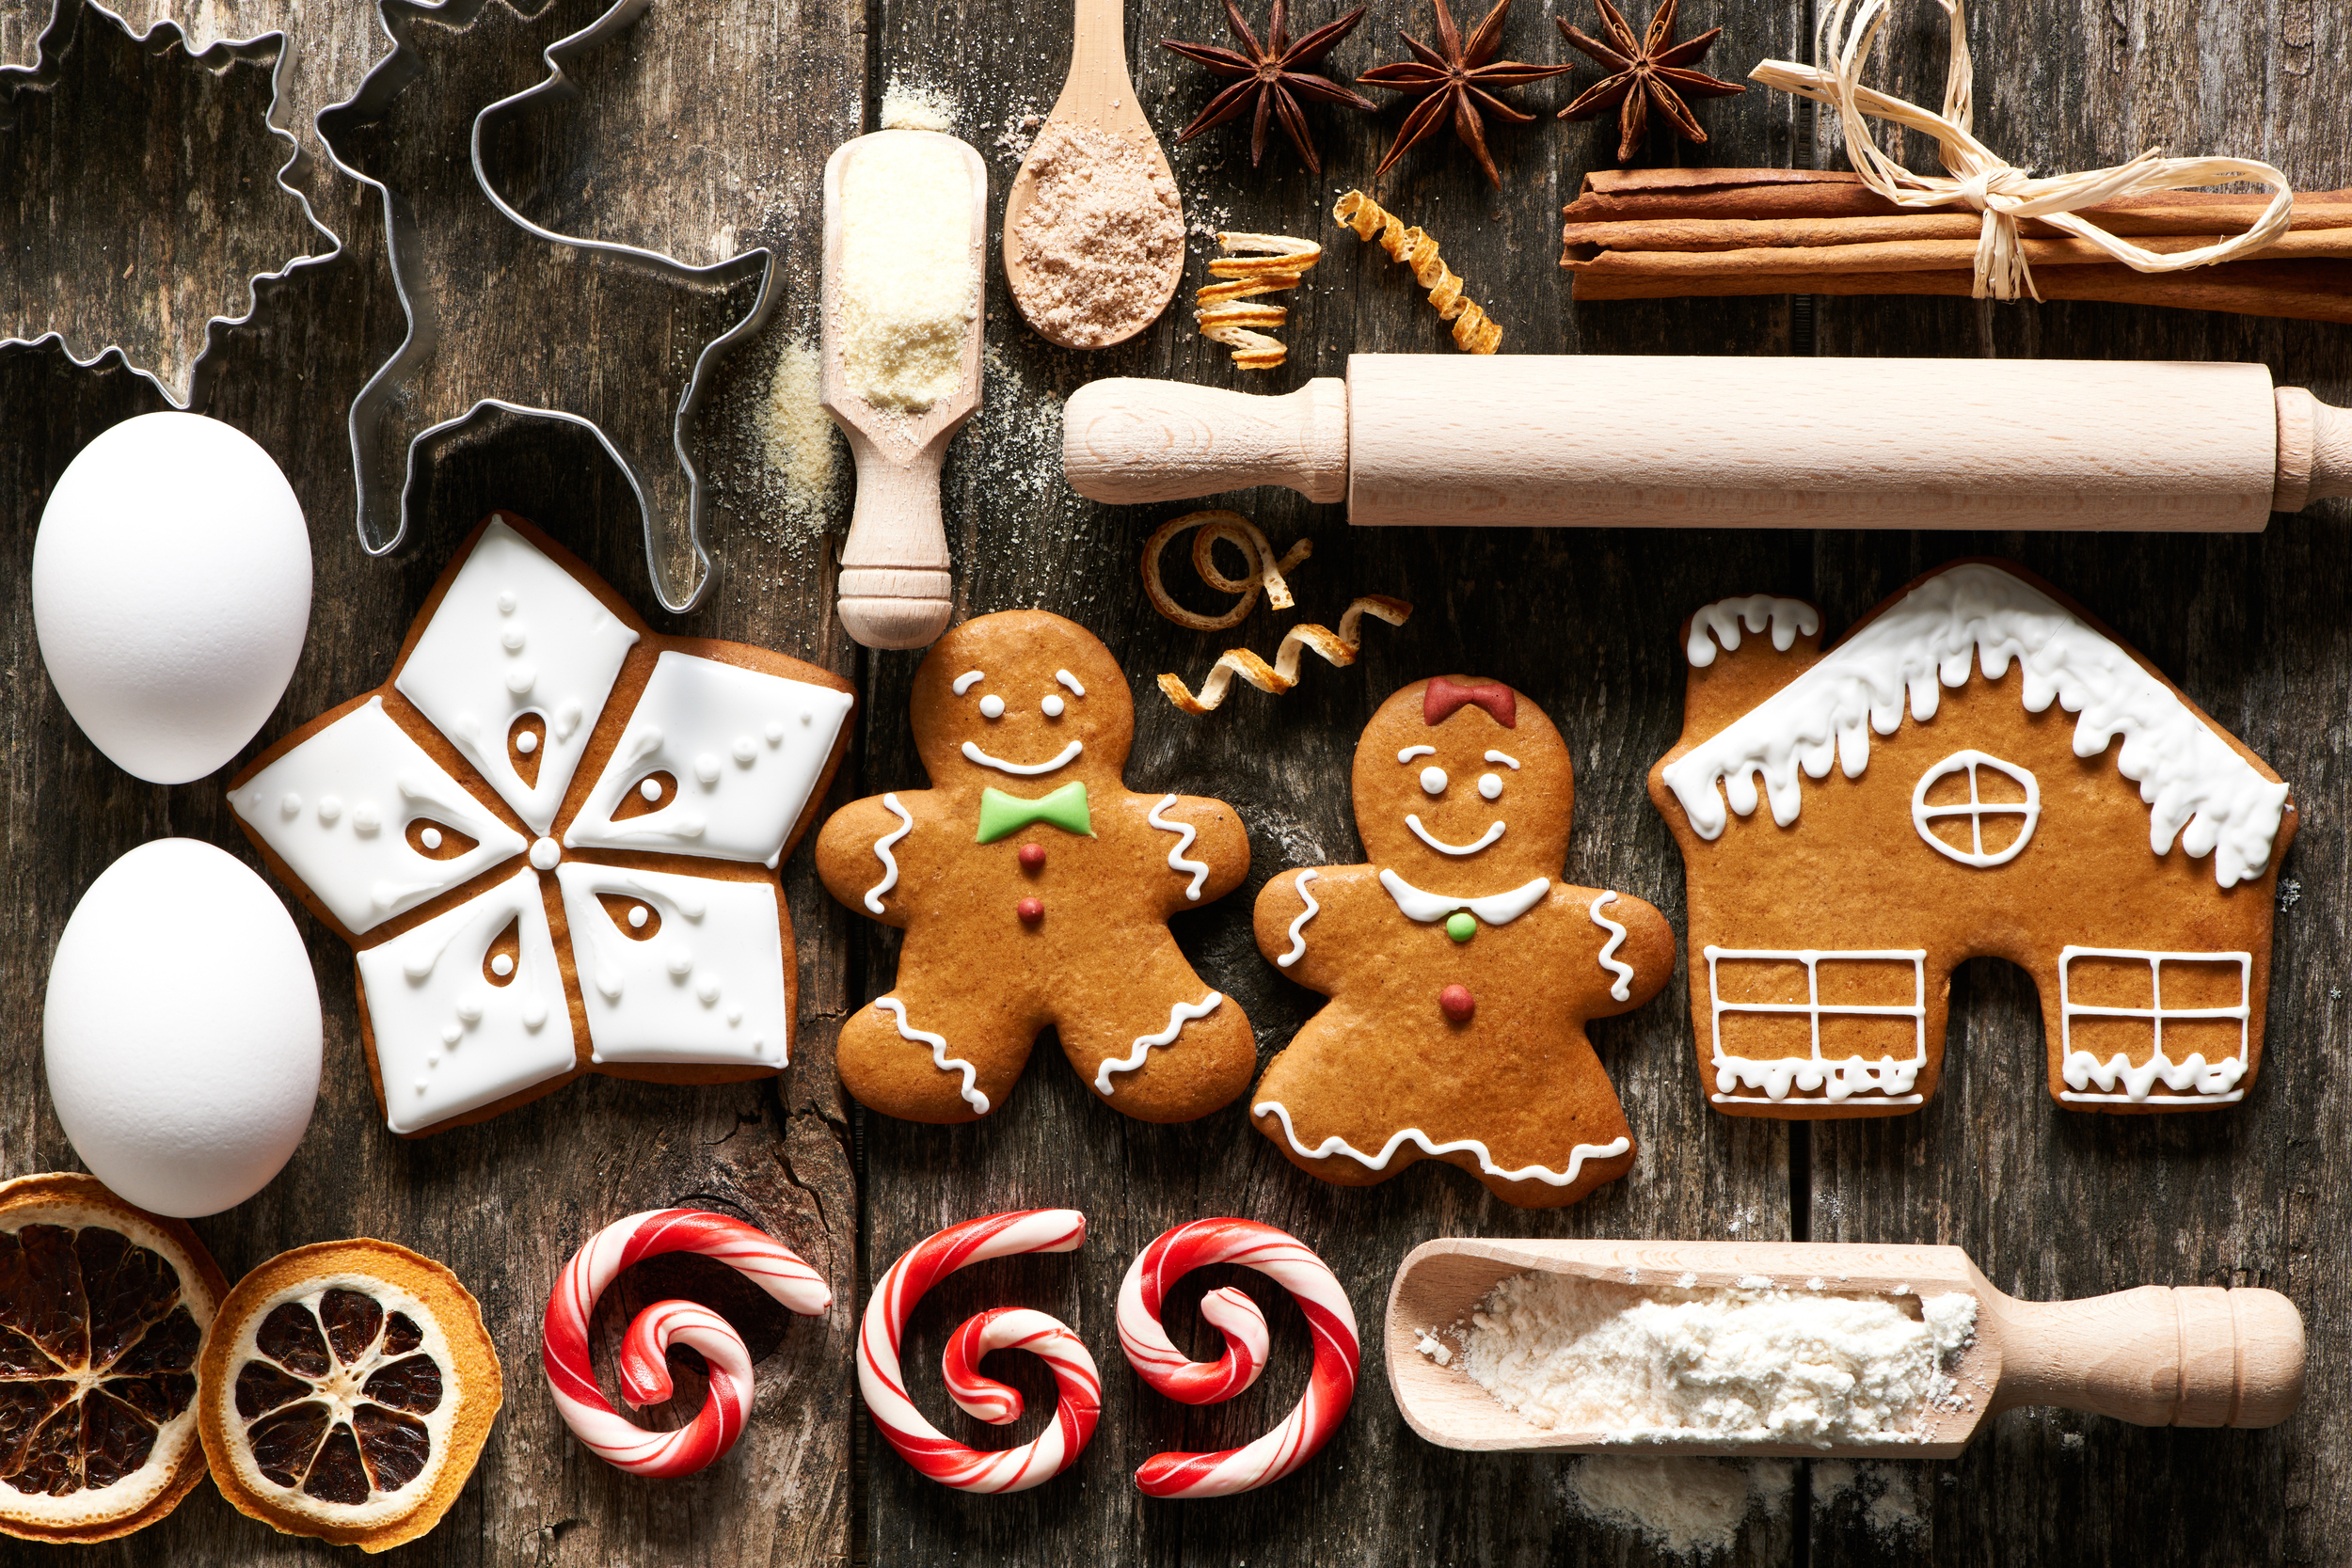 It's all in the gingerbread...